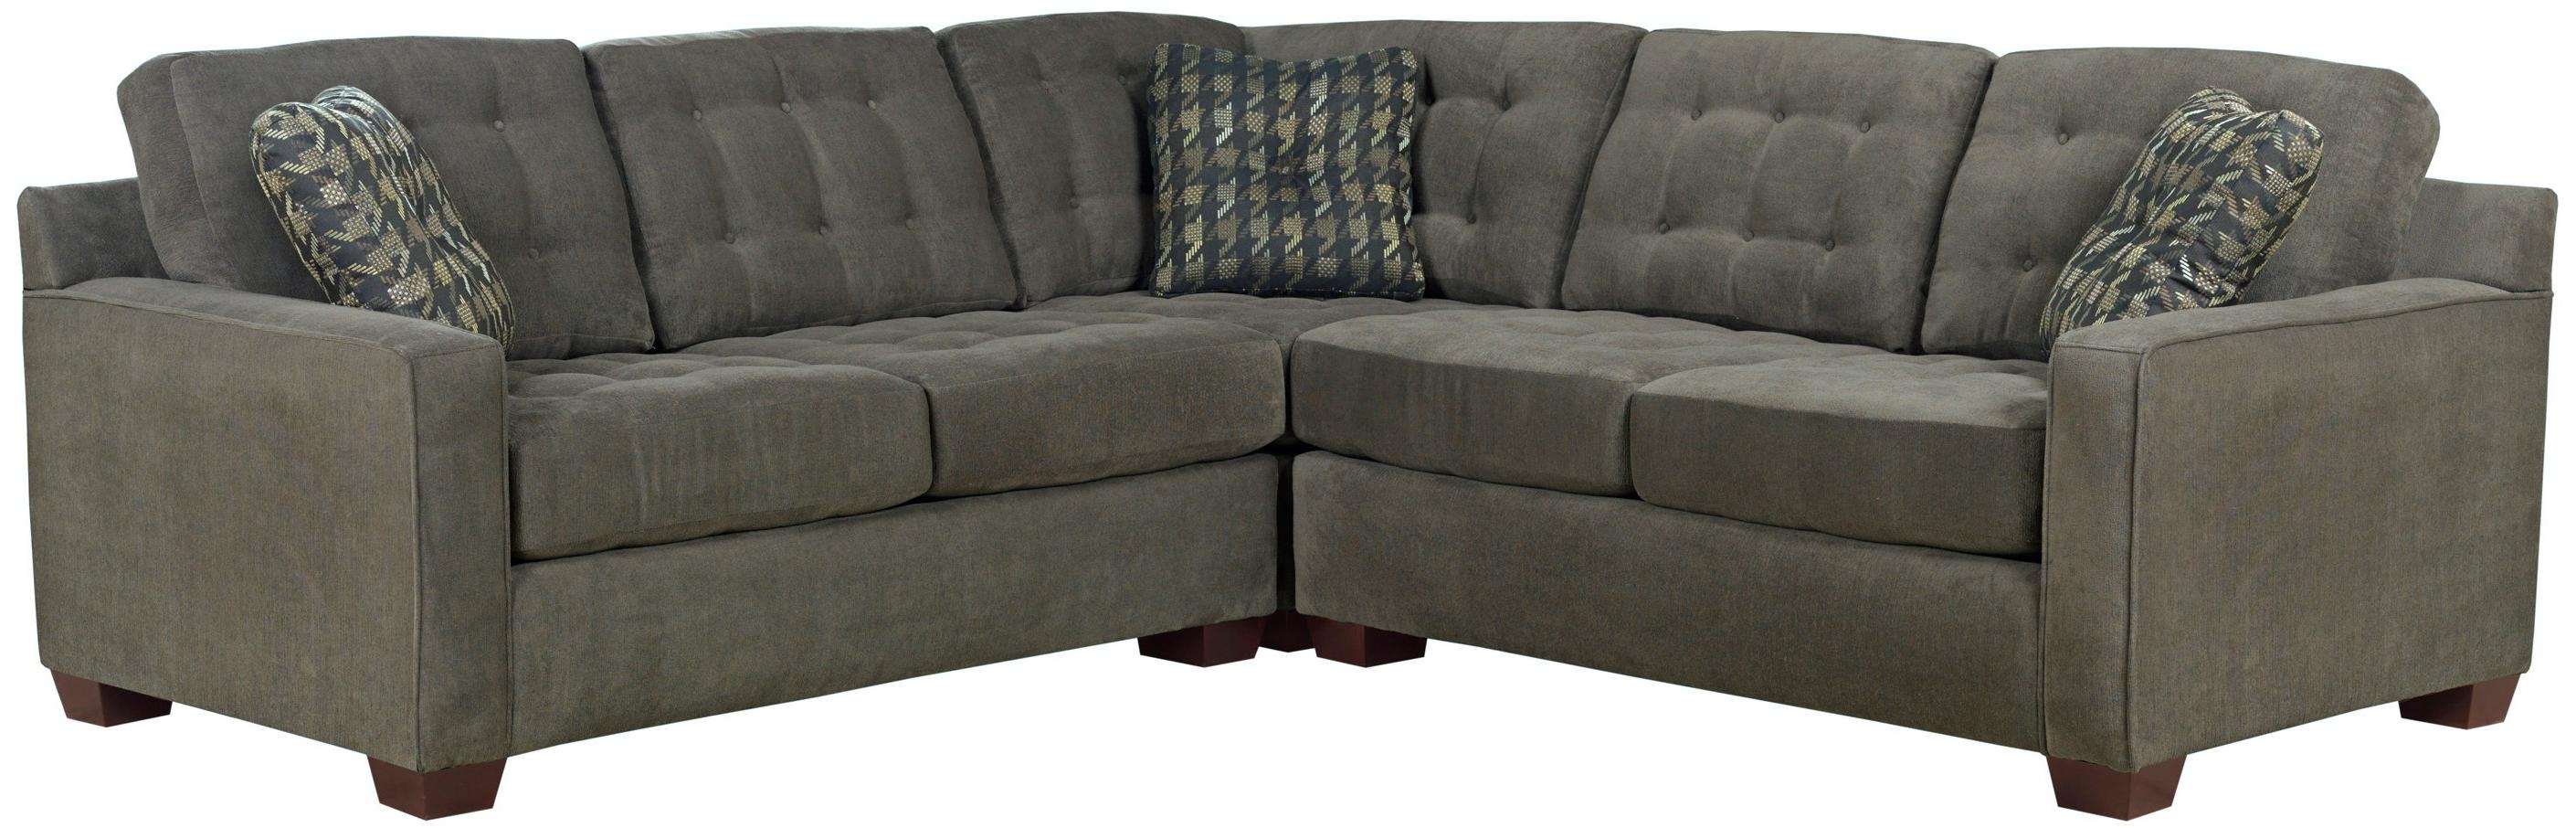 Broyhill Furniture Tribeca Contemporary L Shaped Sectional Sofa Inside Broyhill Sectional Sofas (#5 of 12)